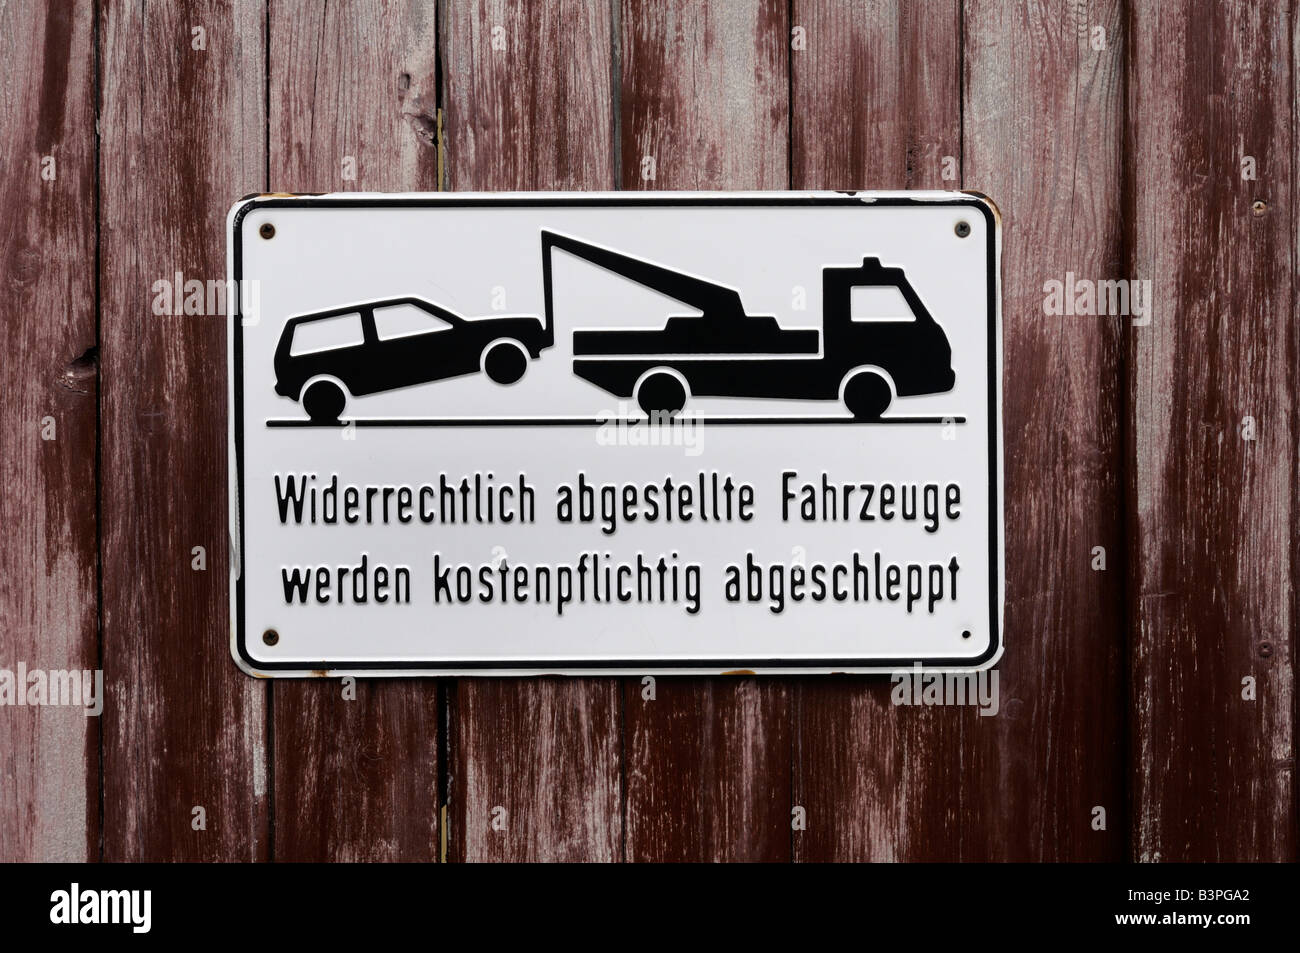 Sign on a wooden door, illegally parked vehicles will be towed away at the owners cost - Stock Image